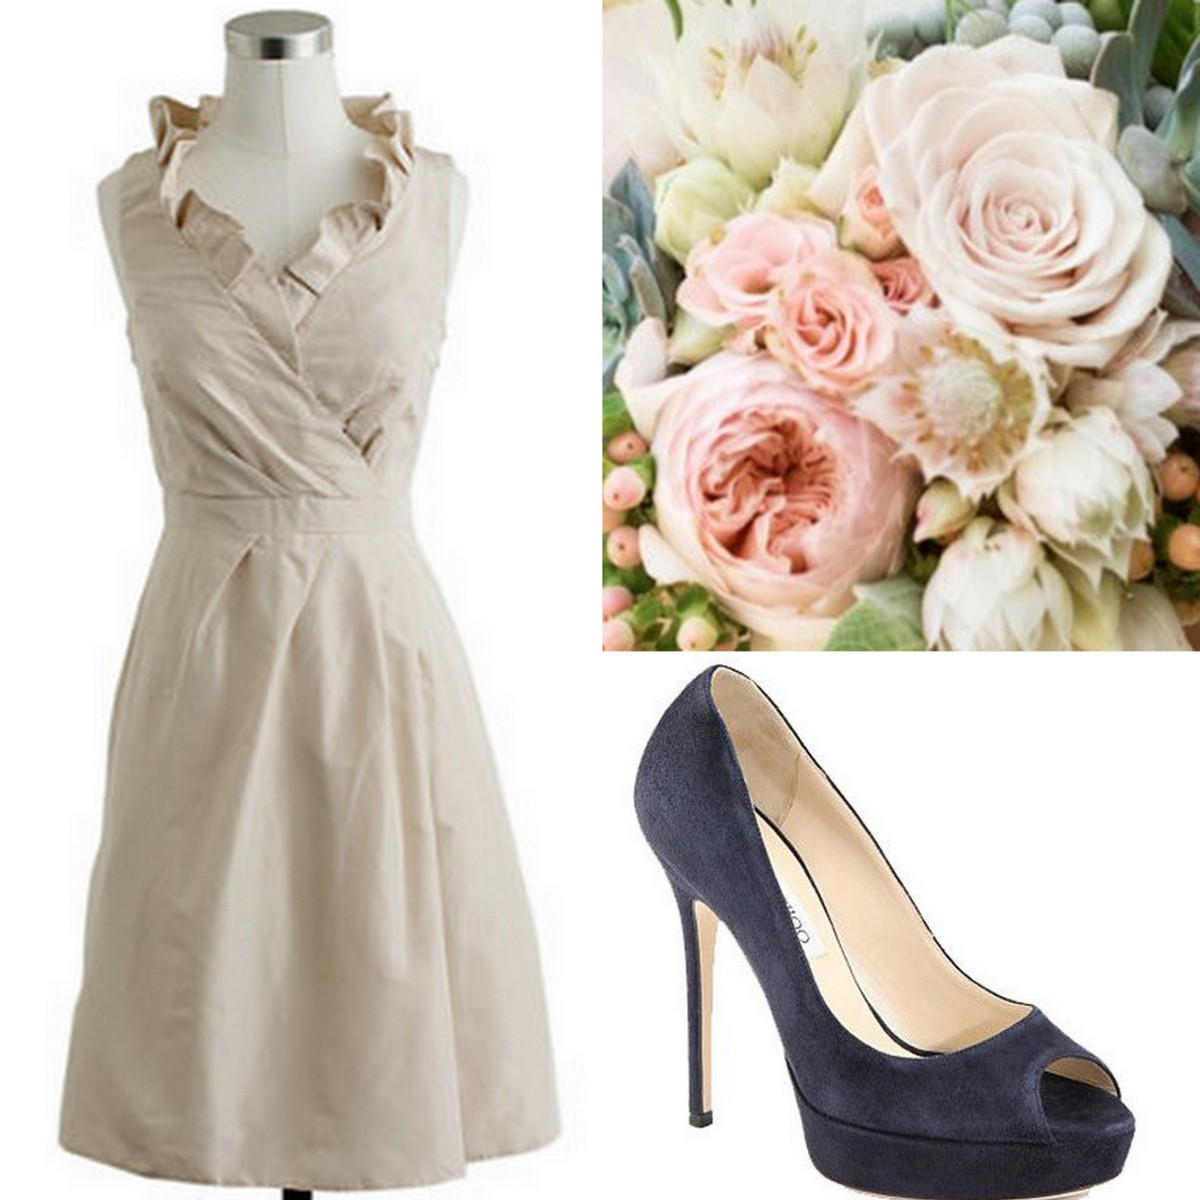 Style, Inspiration, & Design Beige J.Crew Flutter Neckline Bridesmaid dress with Navy Peeptoe Jimmy Choo and Blush, Light pink bouquet